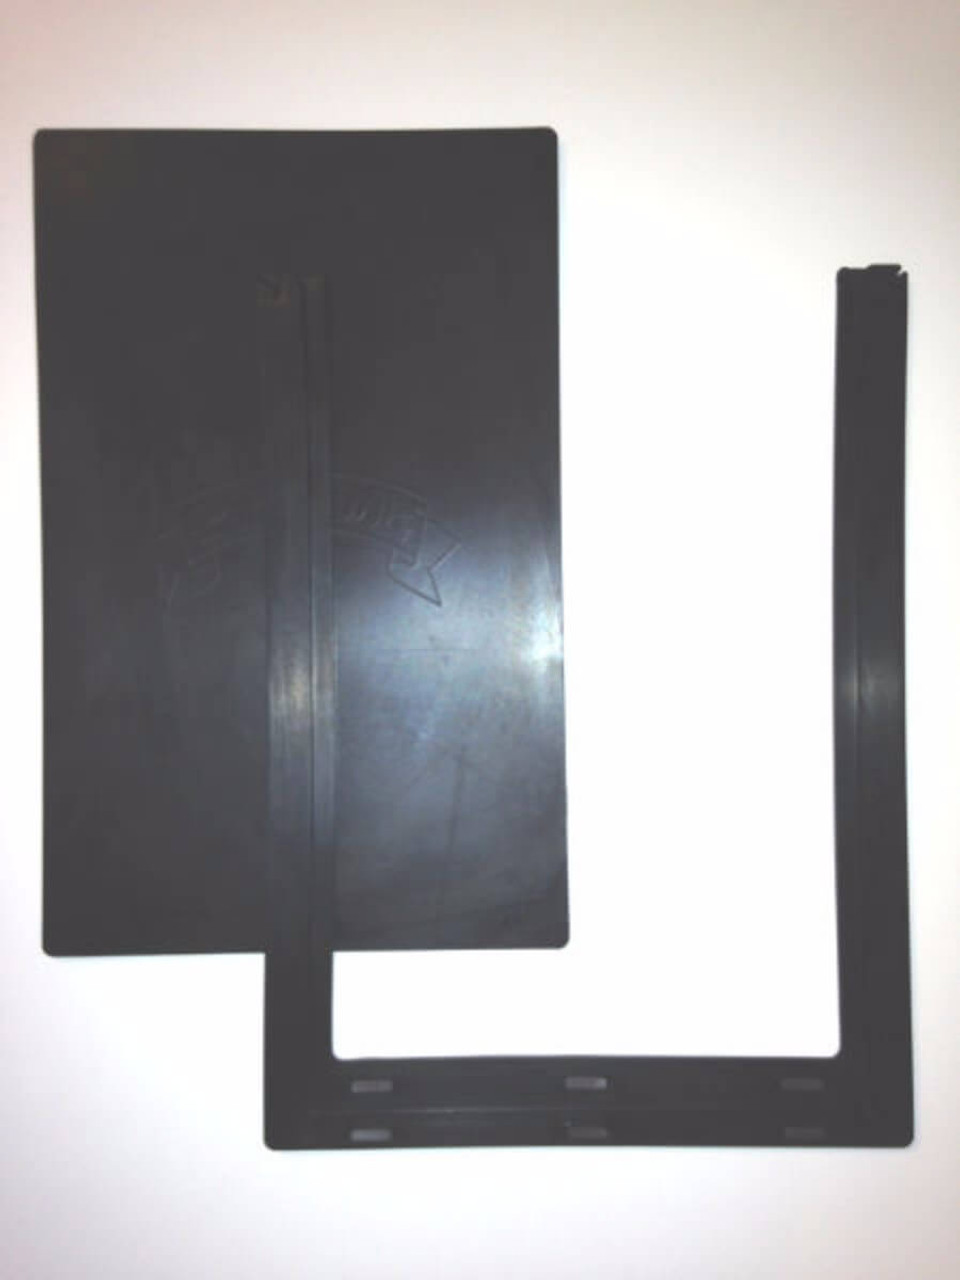 Pride replacement flap fits johnson pet door store pride pet door flaps have a center flap and an outer u shaped flap and are eventshaper